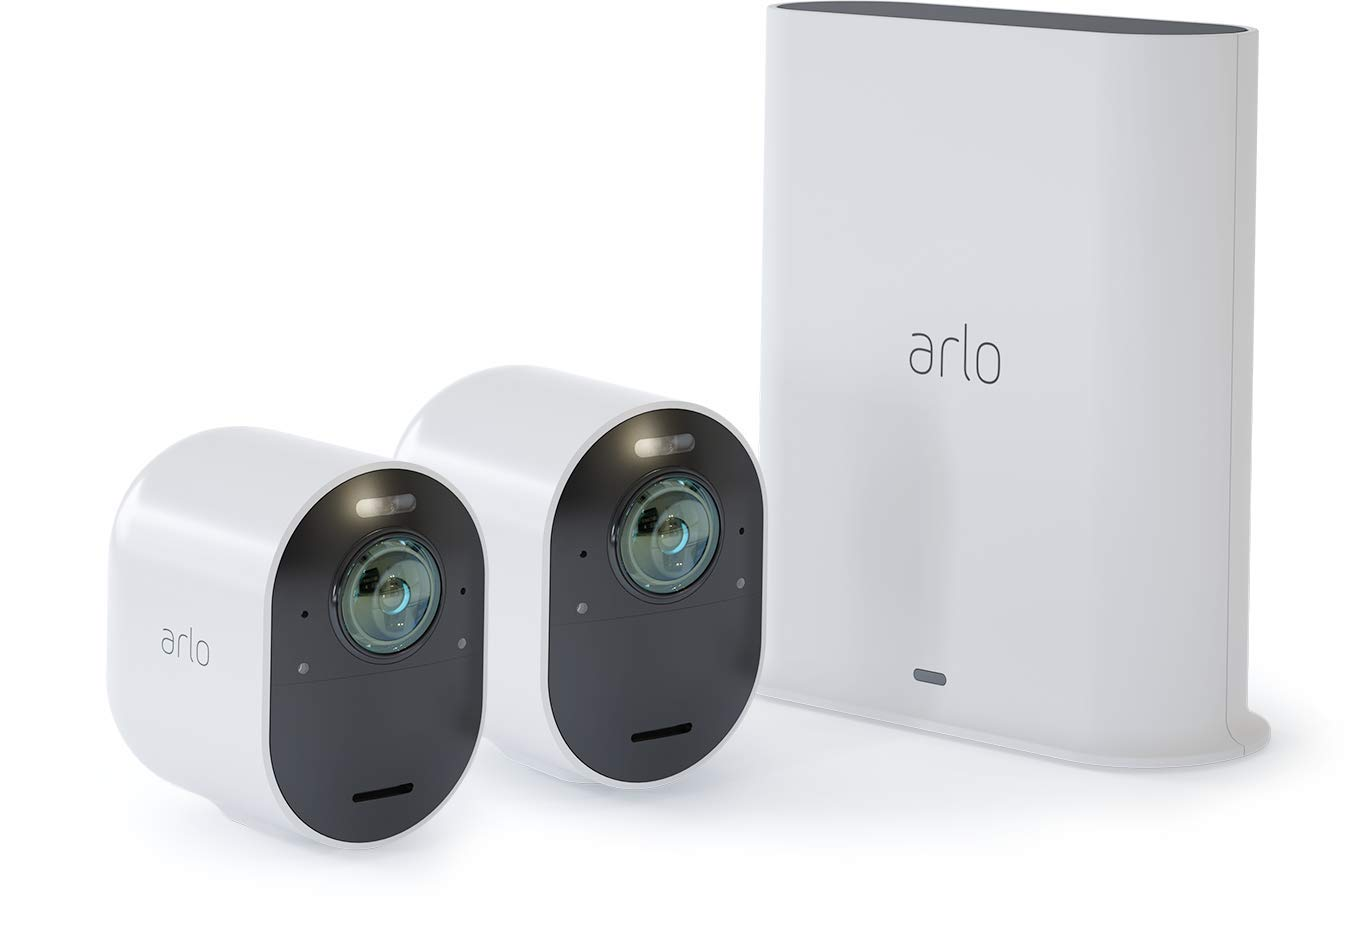 Arlo Ultra - 4K UHD Wire-Free Security 2 Camera System | Indoor/Outdoor Security Cameras with Color Night Vision, 180° View, 2-Way Audio, Spotlight, Siren | Works with Alexa | (VMS5240) by Arlo Technologies, Inc